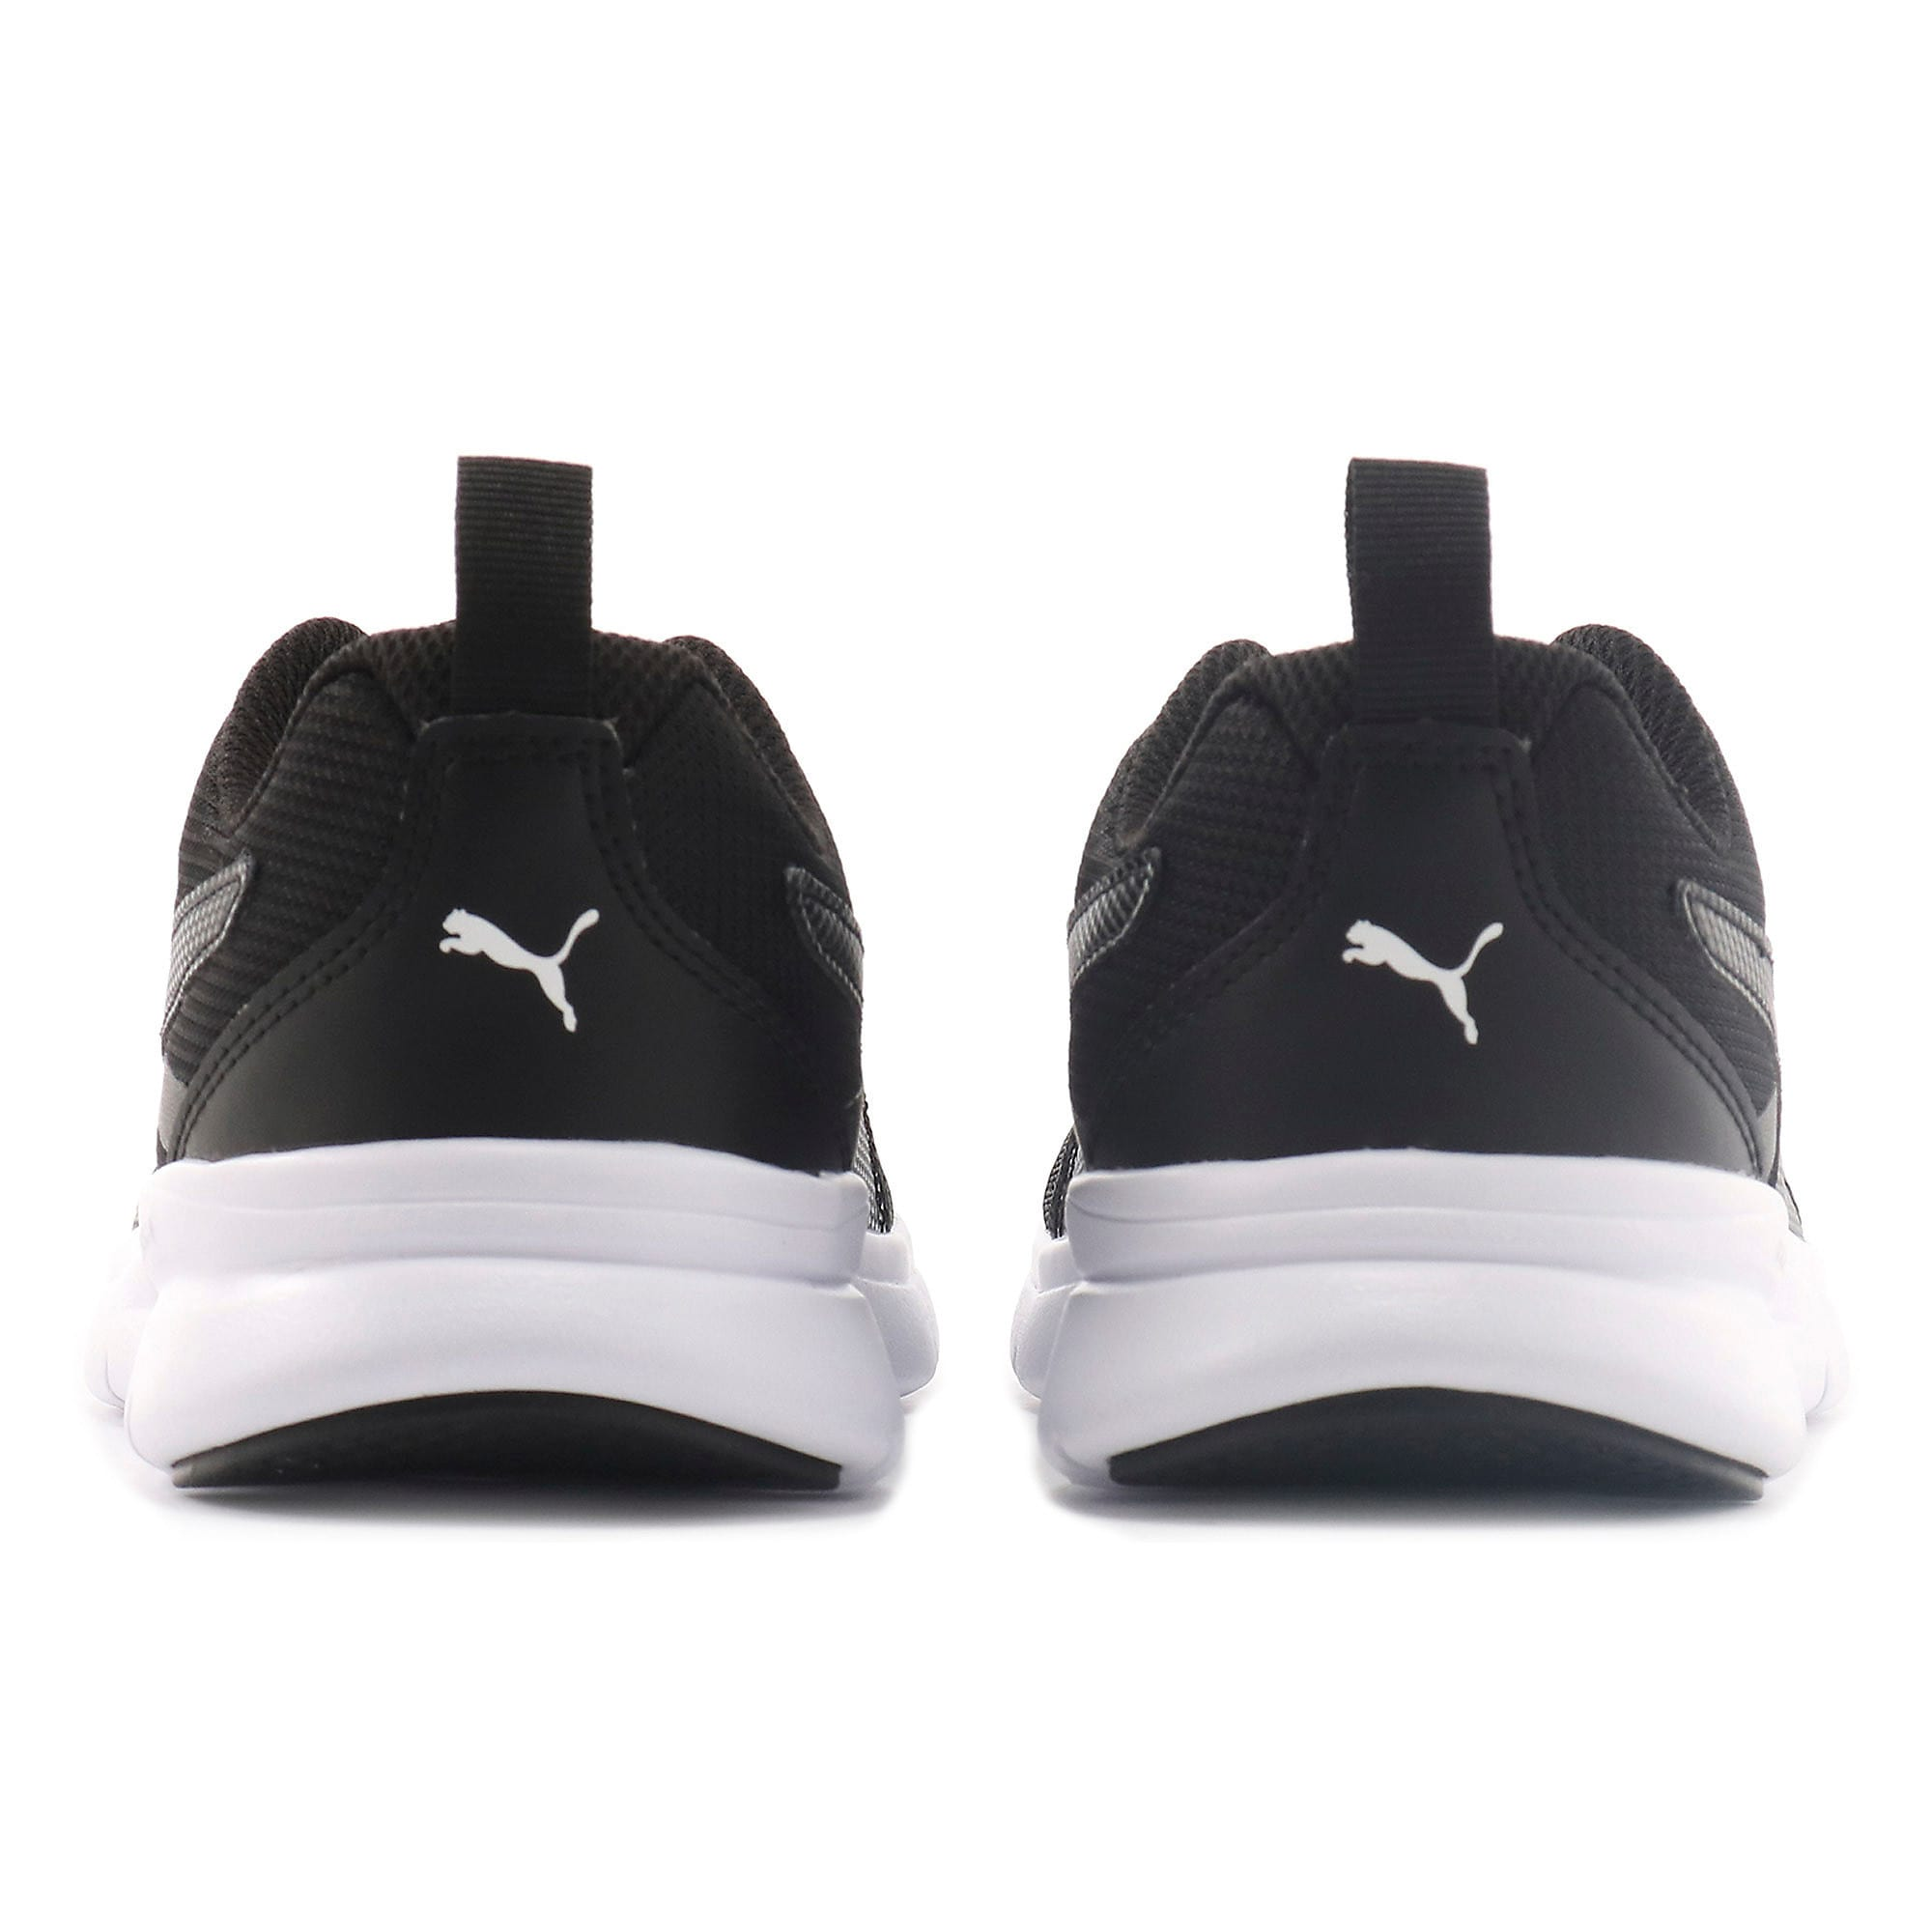 Thumbnail 3 of Essential Flex Youth Trainers, Puma Black-Puma Black, medium-IND